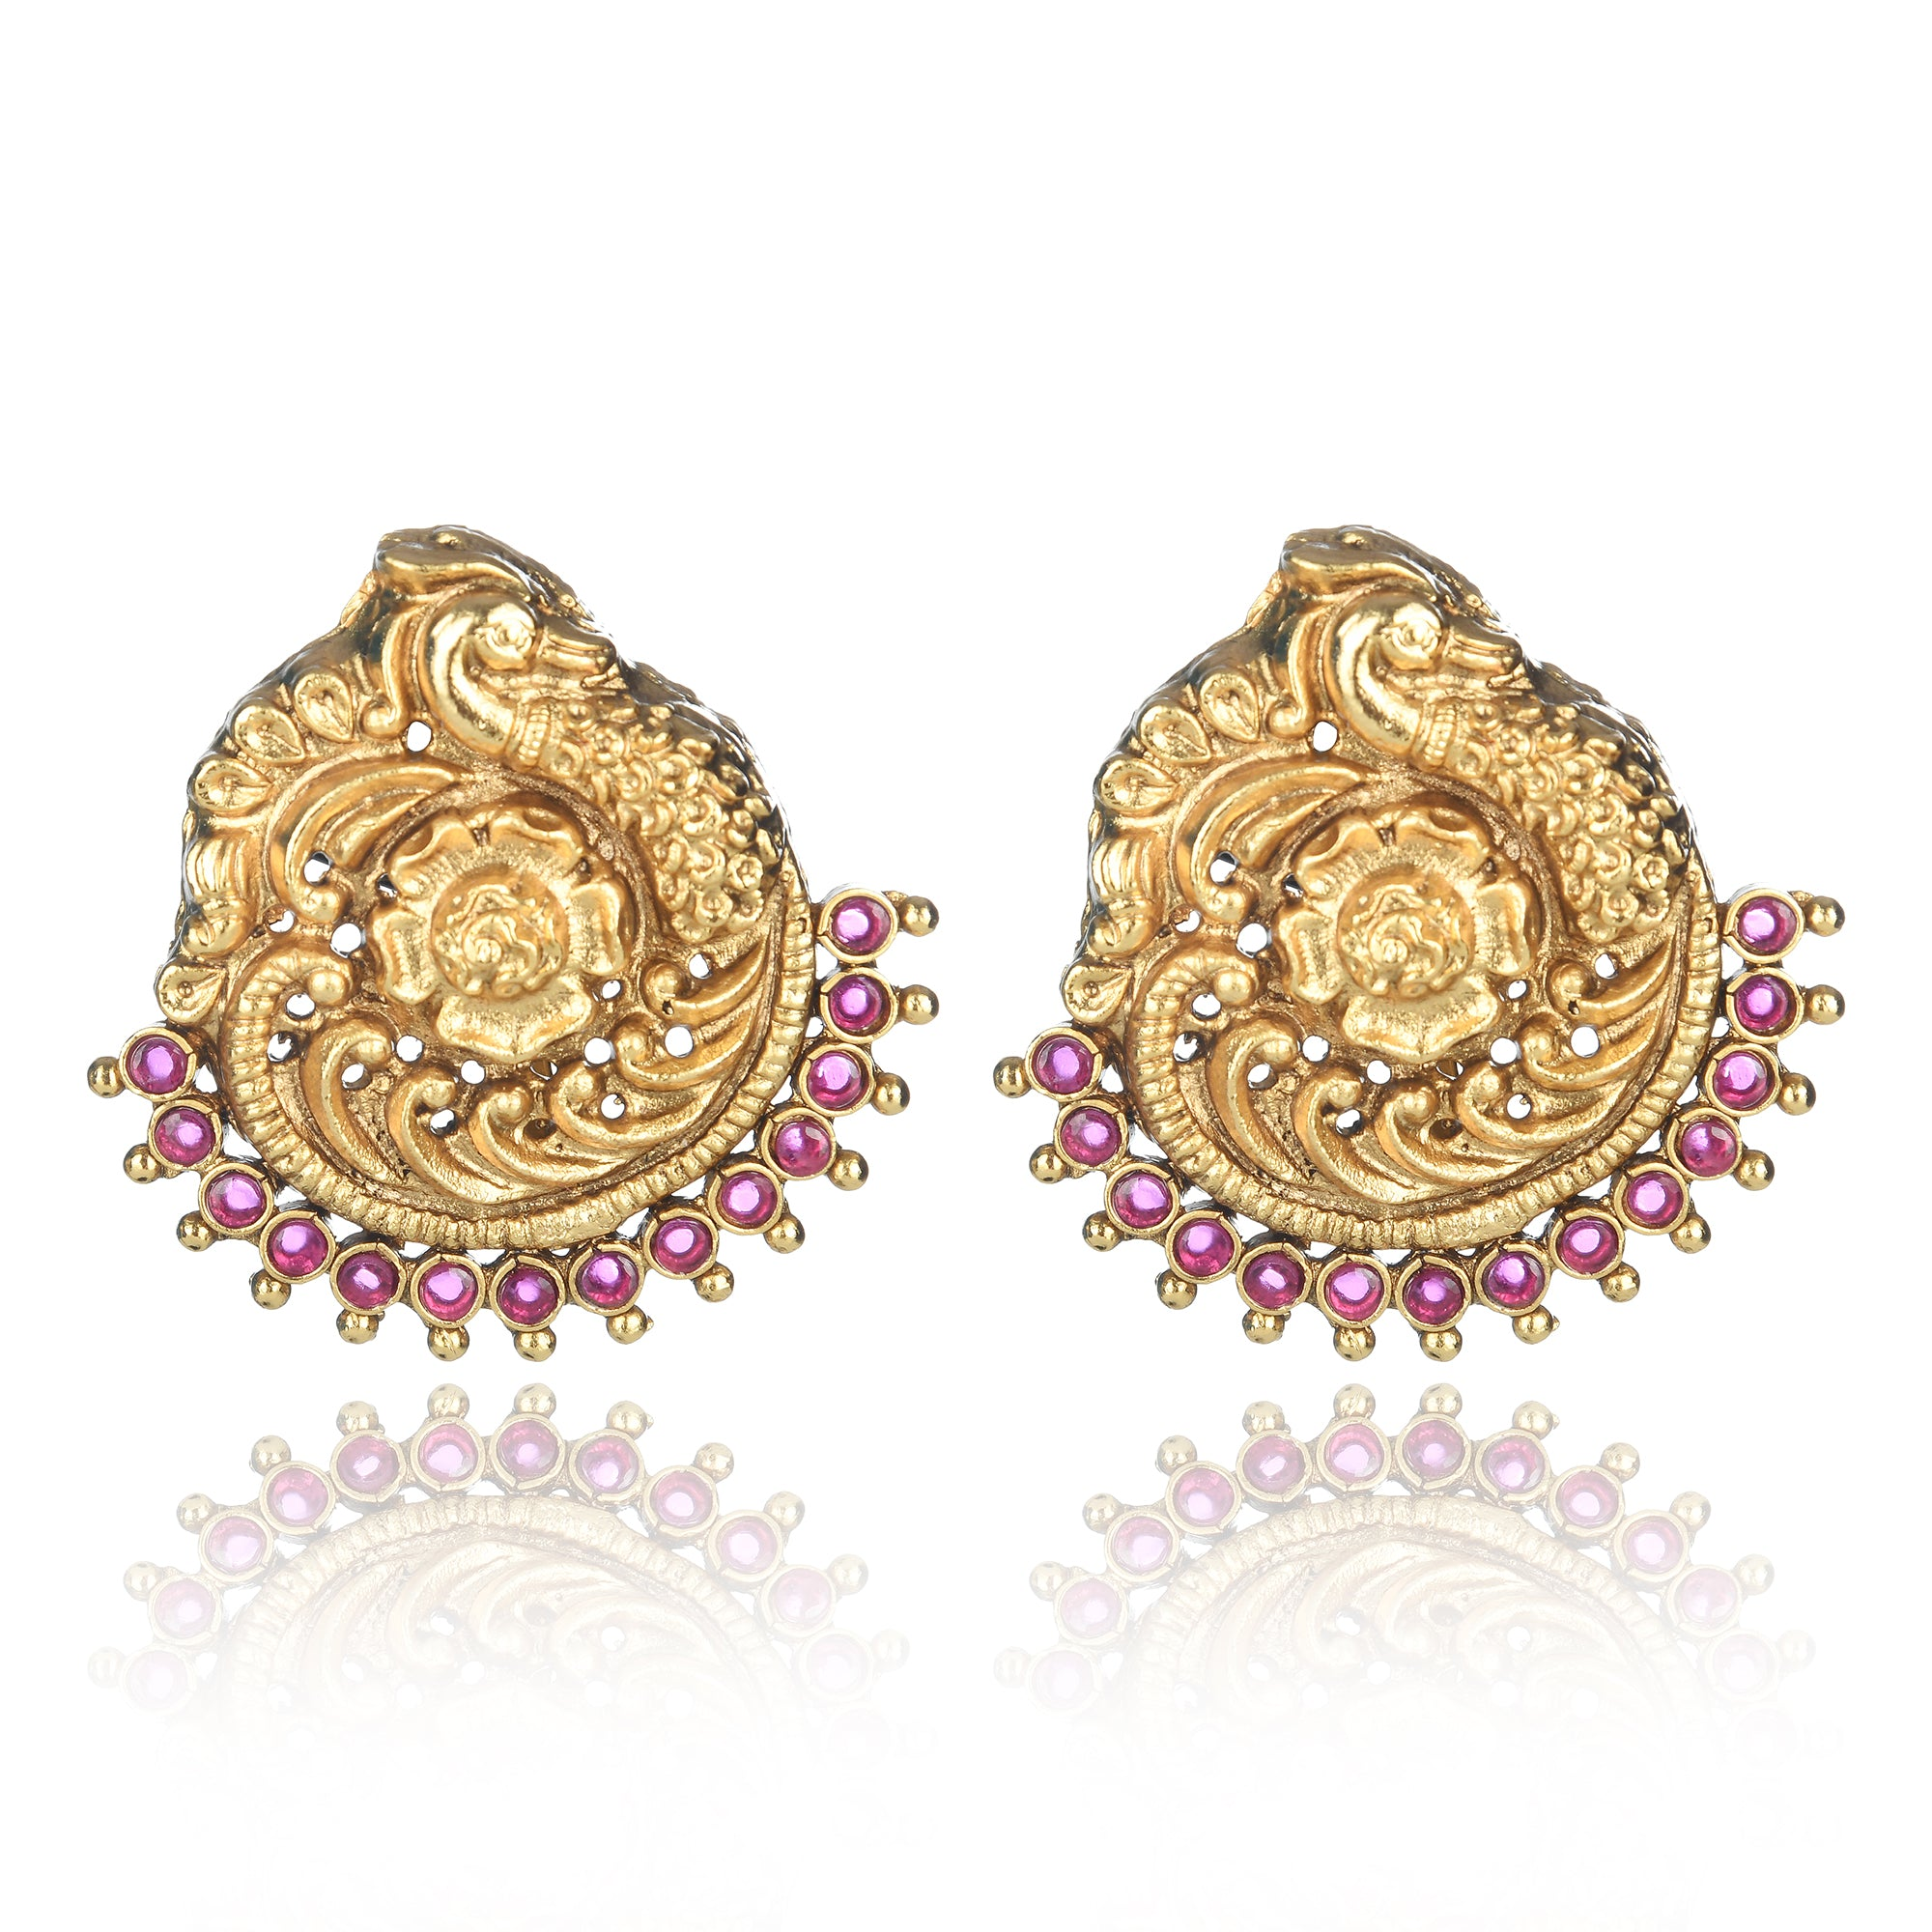 GOLD PLATED TEMPLE STUDS